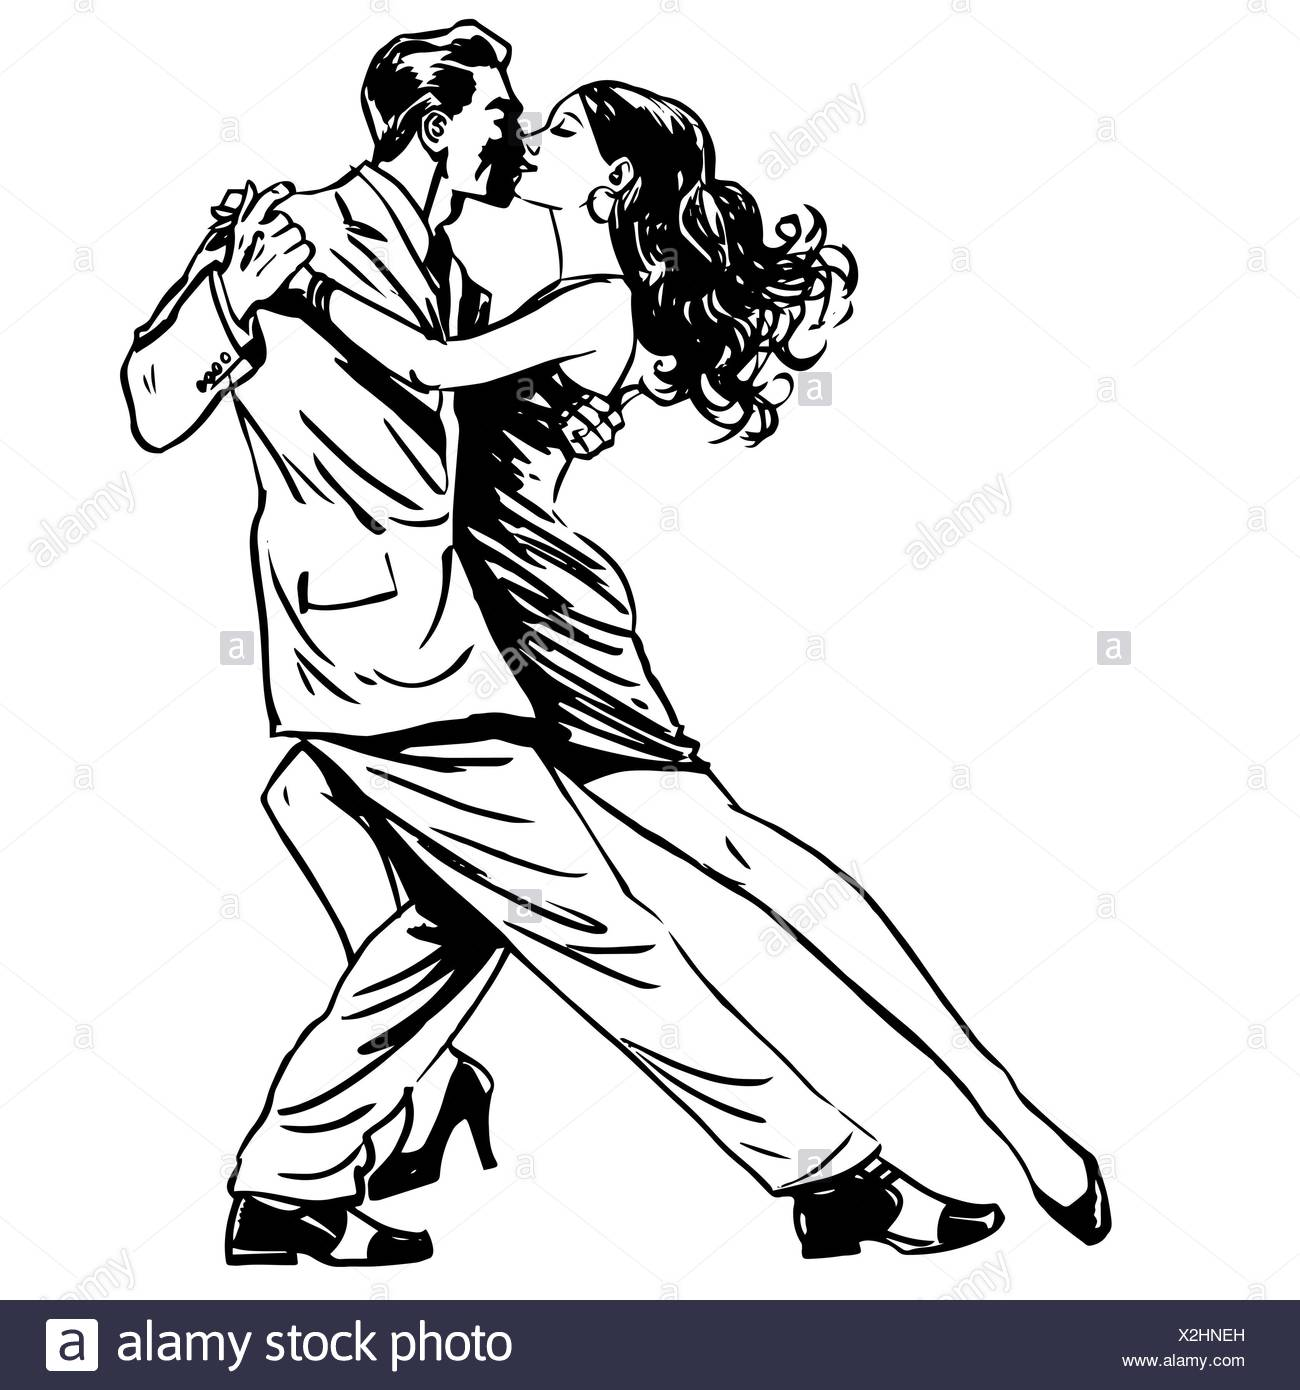 2 way kiss line dance 2003 dodge ram ignition wiring diagram couple silhouette dancing waltz stock photos and